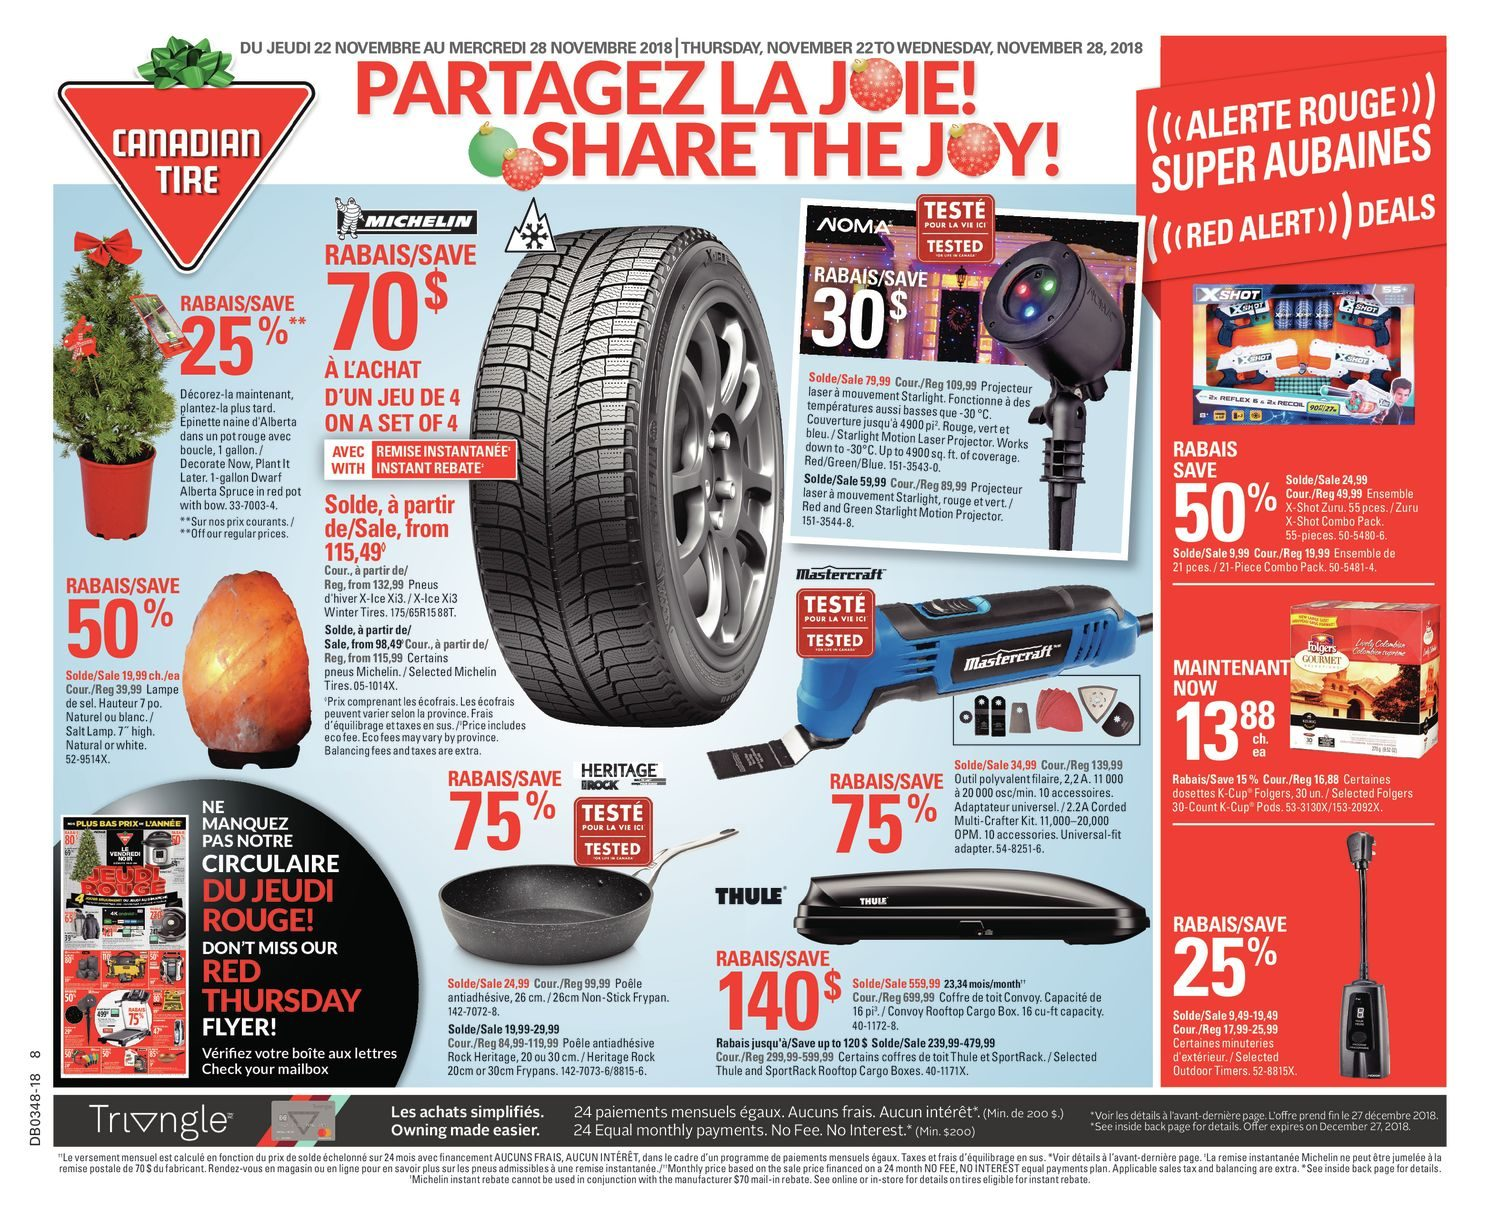 Canadian Tire Weekly Flyer Weekly Share The Joy Nov 22 28 Redflagdeals Com